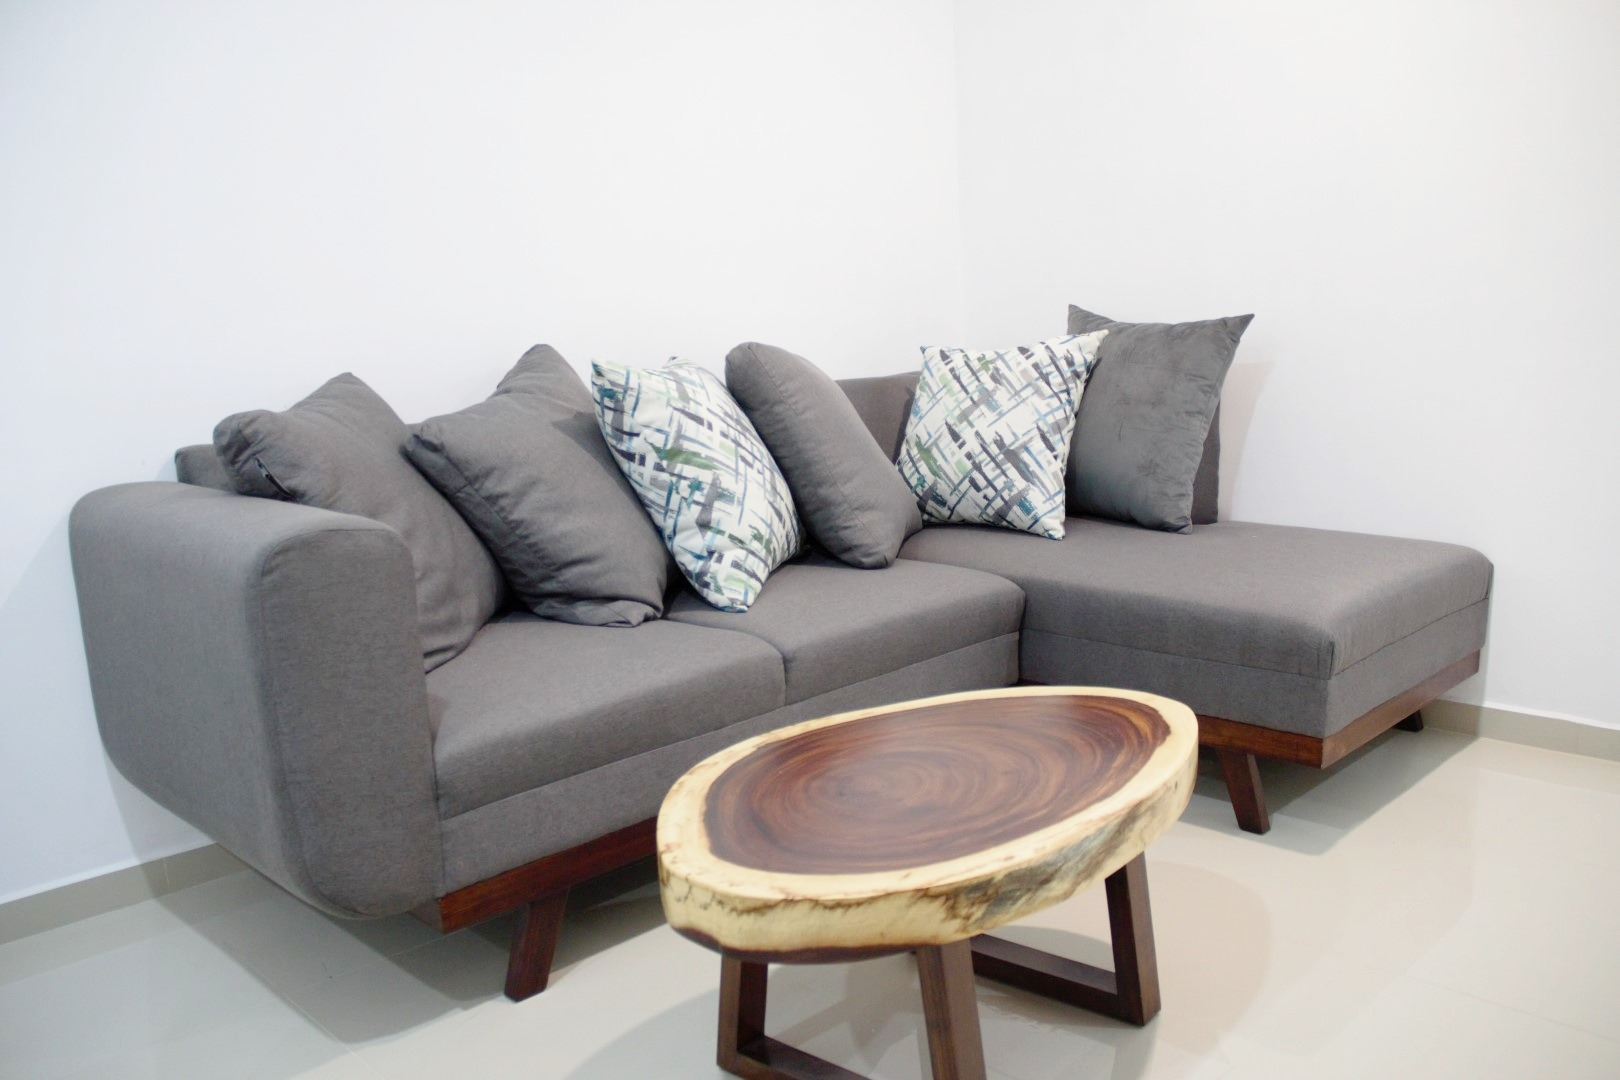 Sectional sofa with natural wood coffee table.